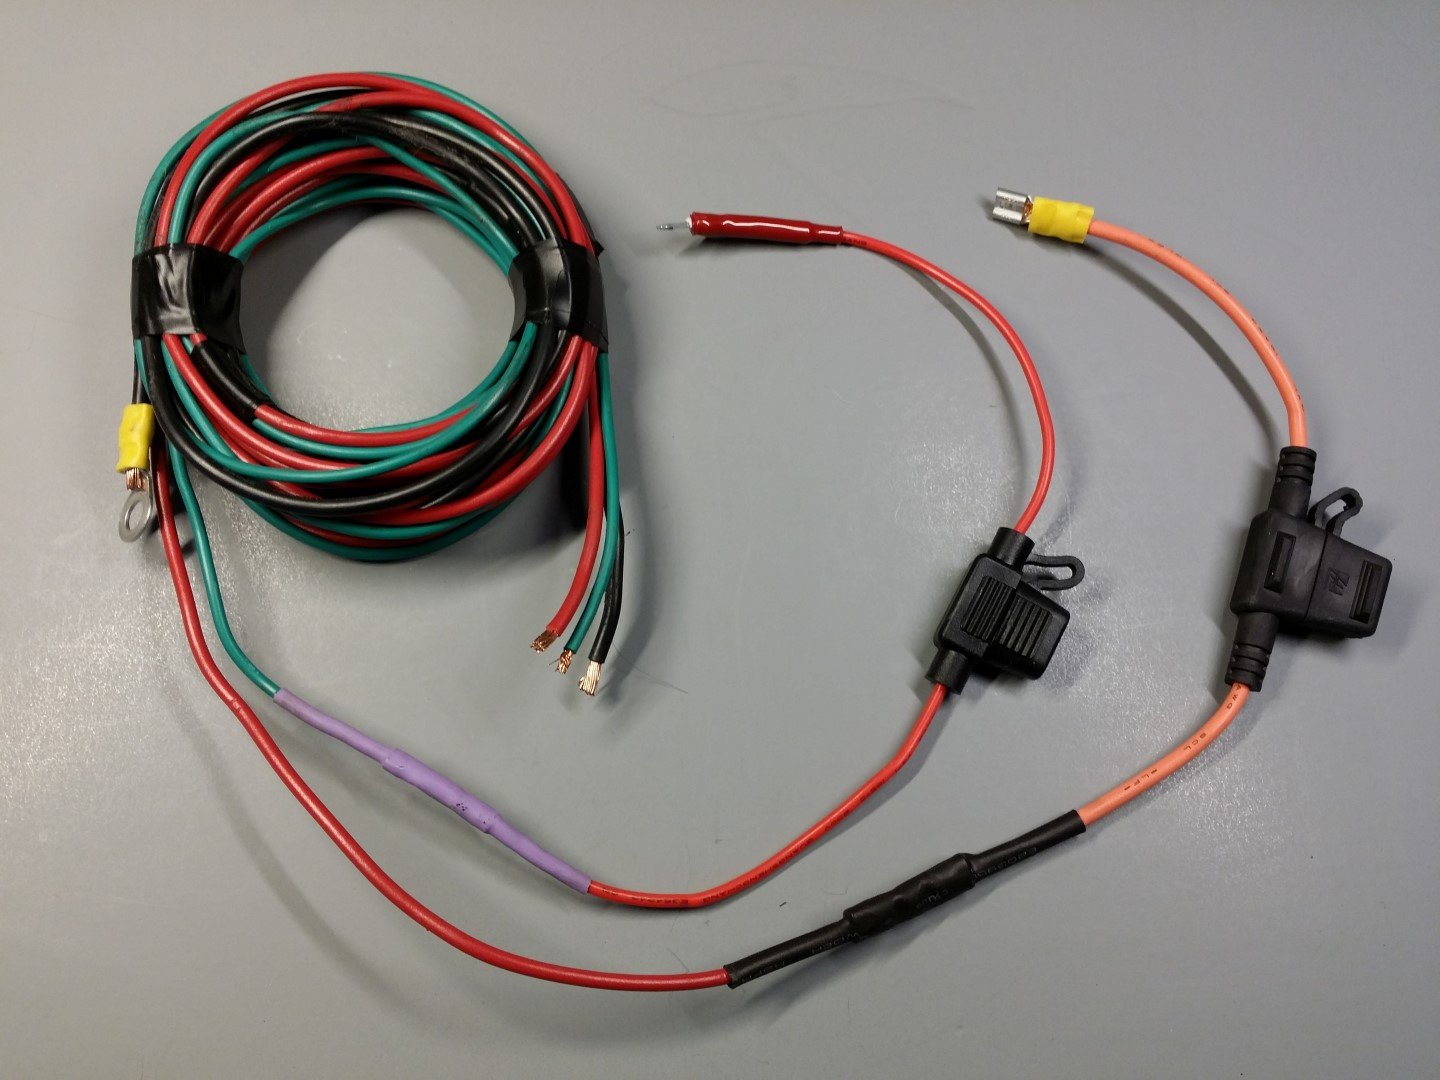 Original add-on fuse wiring (removed)